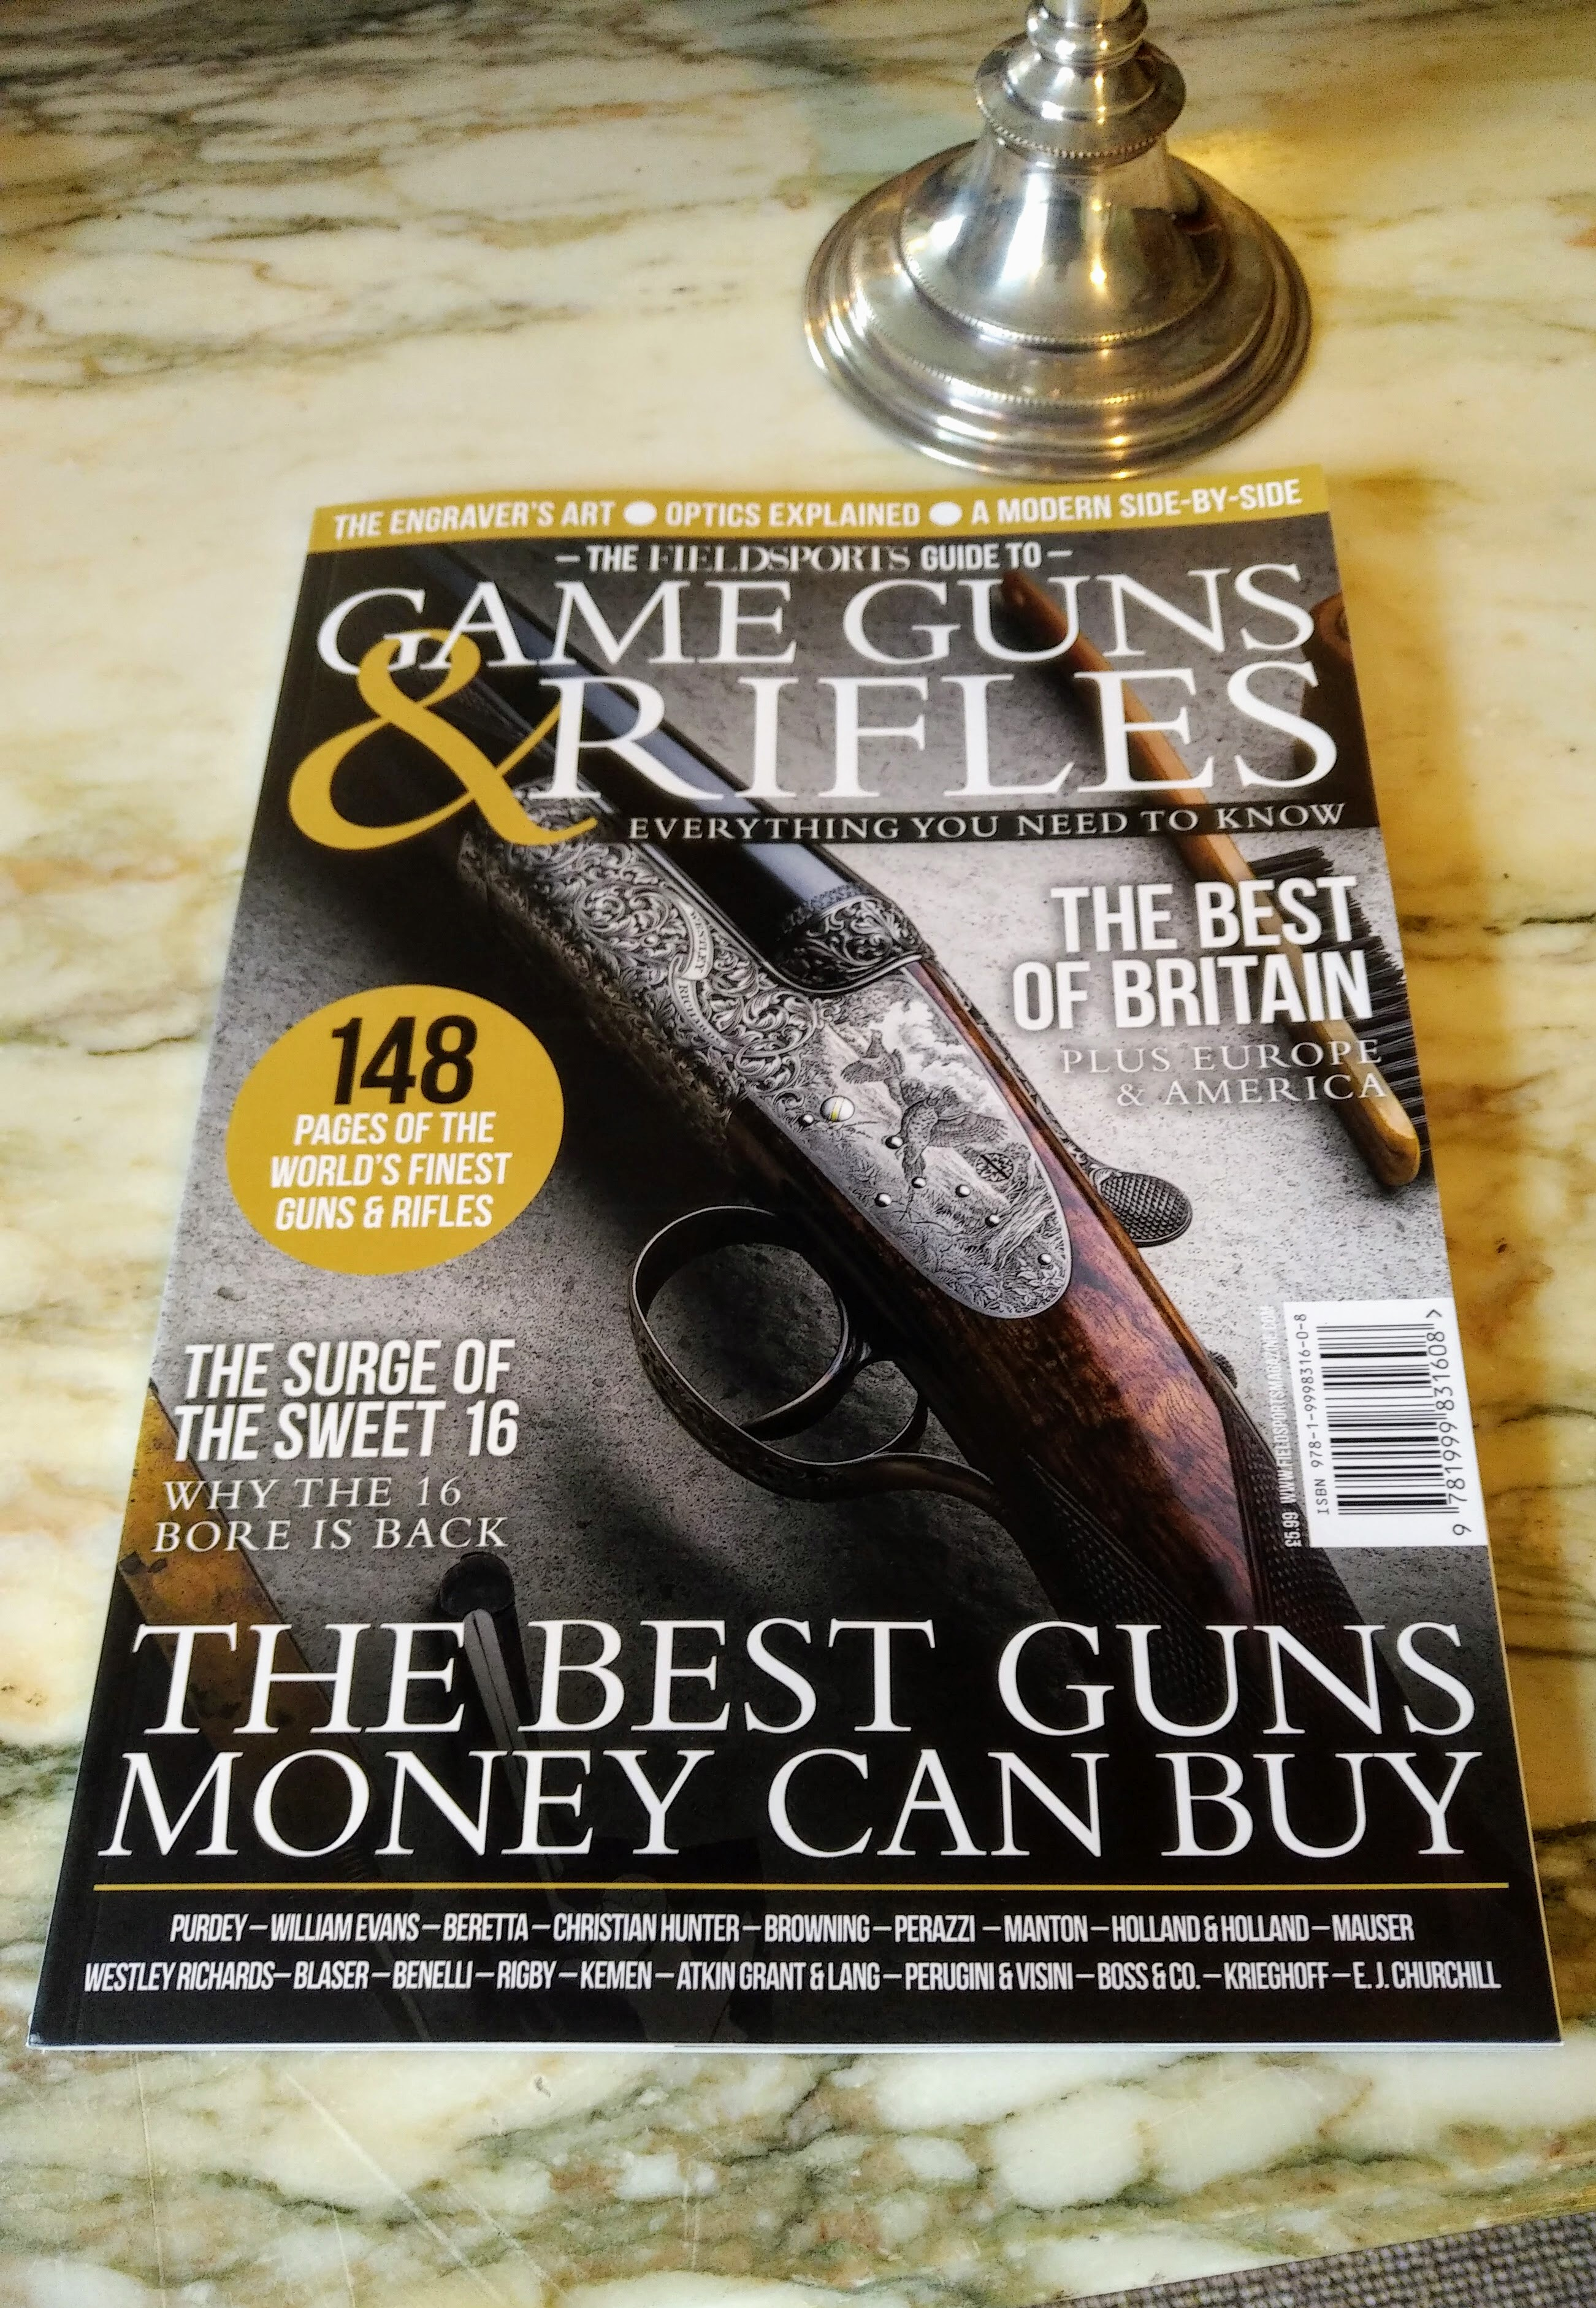 The Fieldsports guide to game guns is out